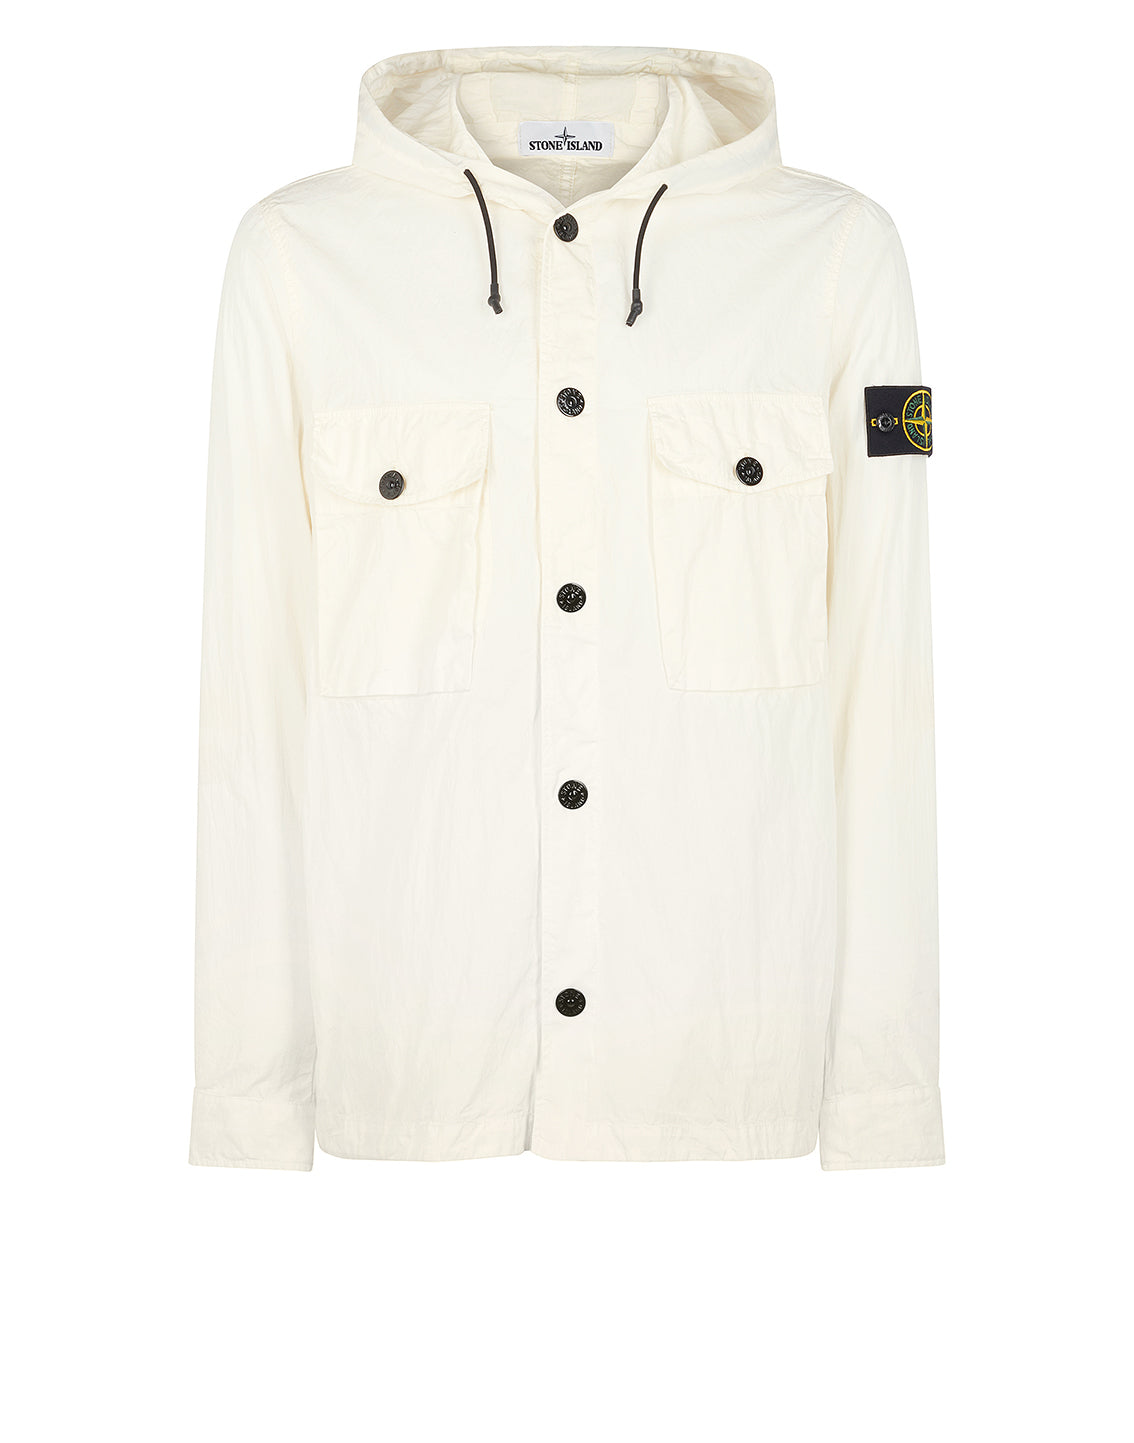 12408 Overshirt in Ivory